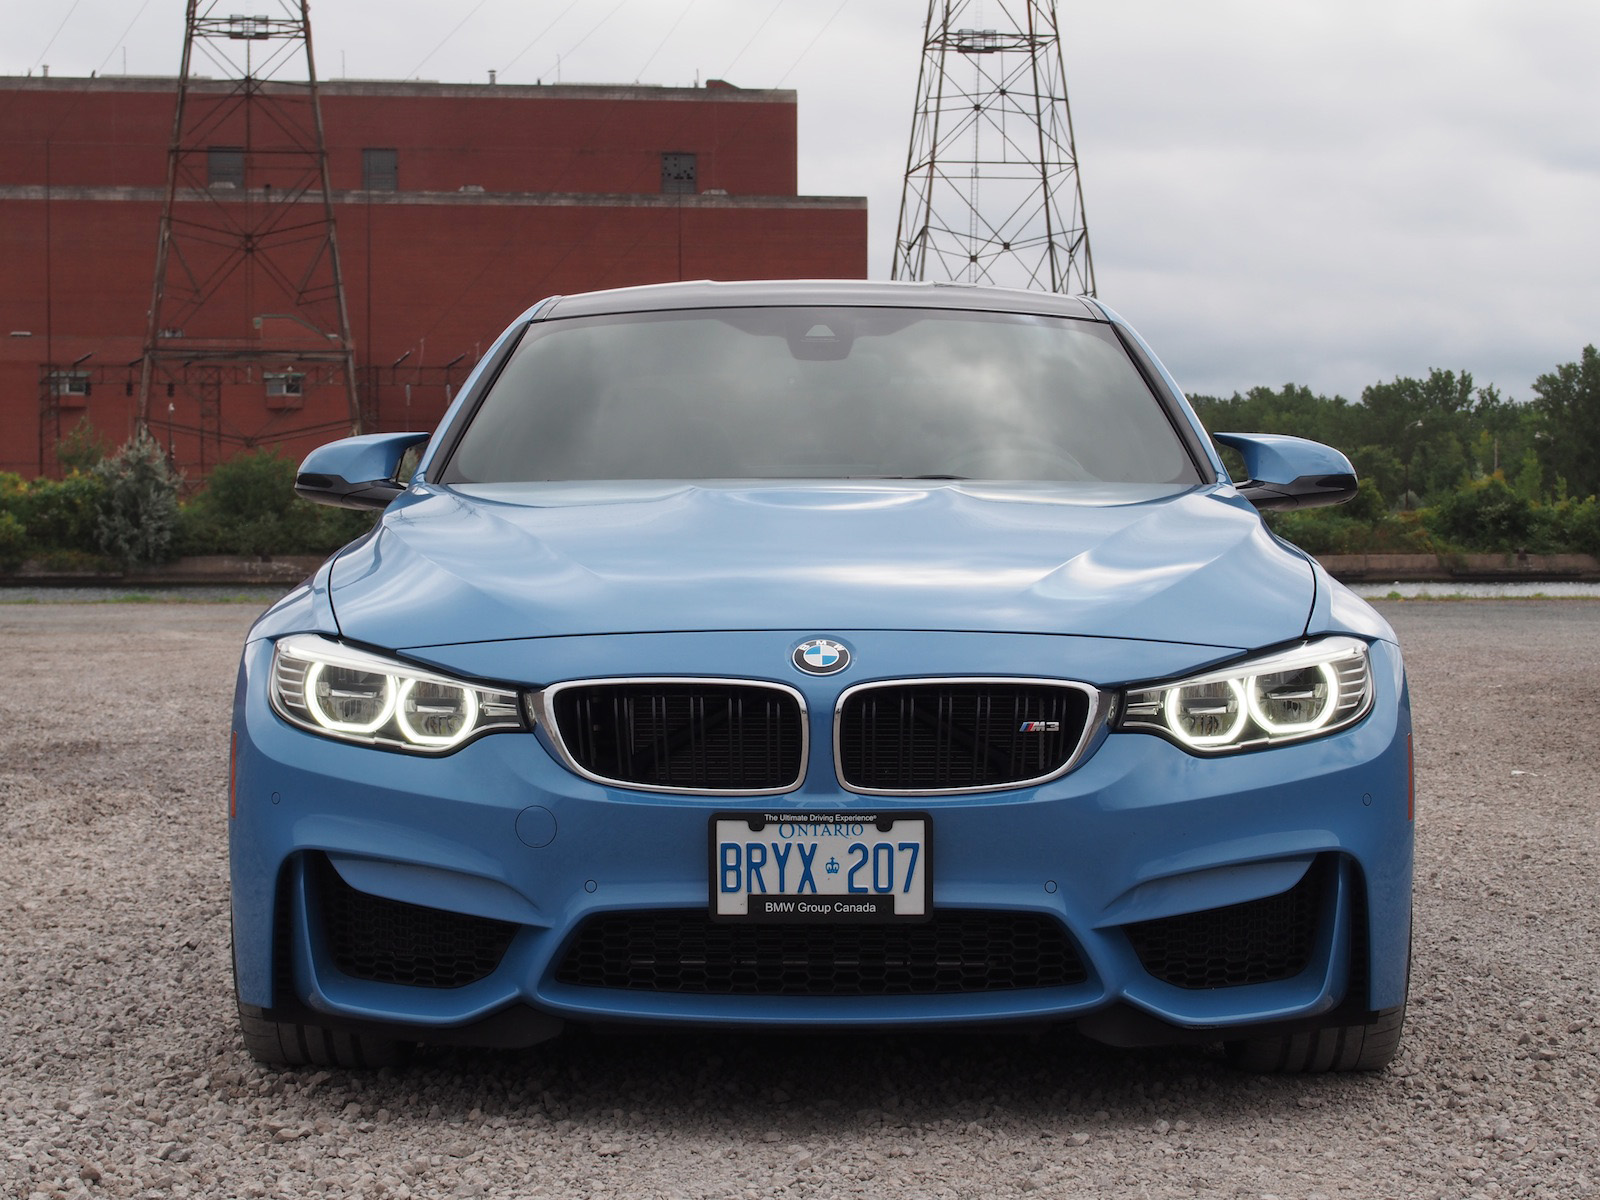 2015 BMW M3 Yas Marina Blue Led Head Lights ...